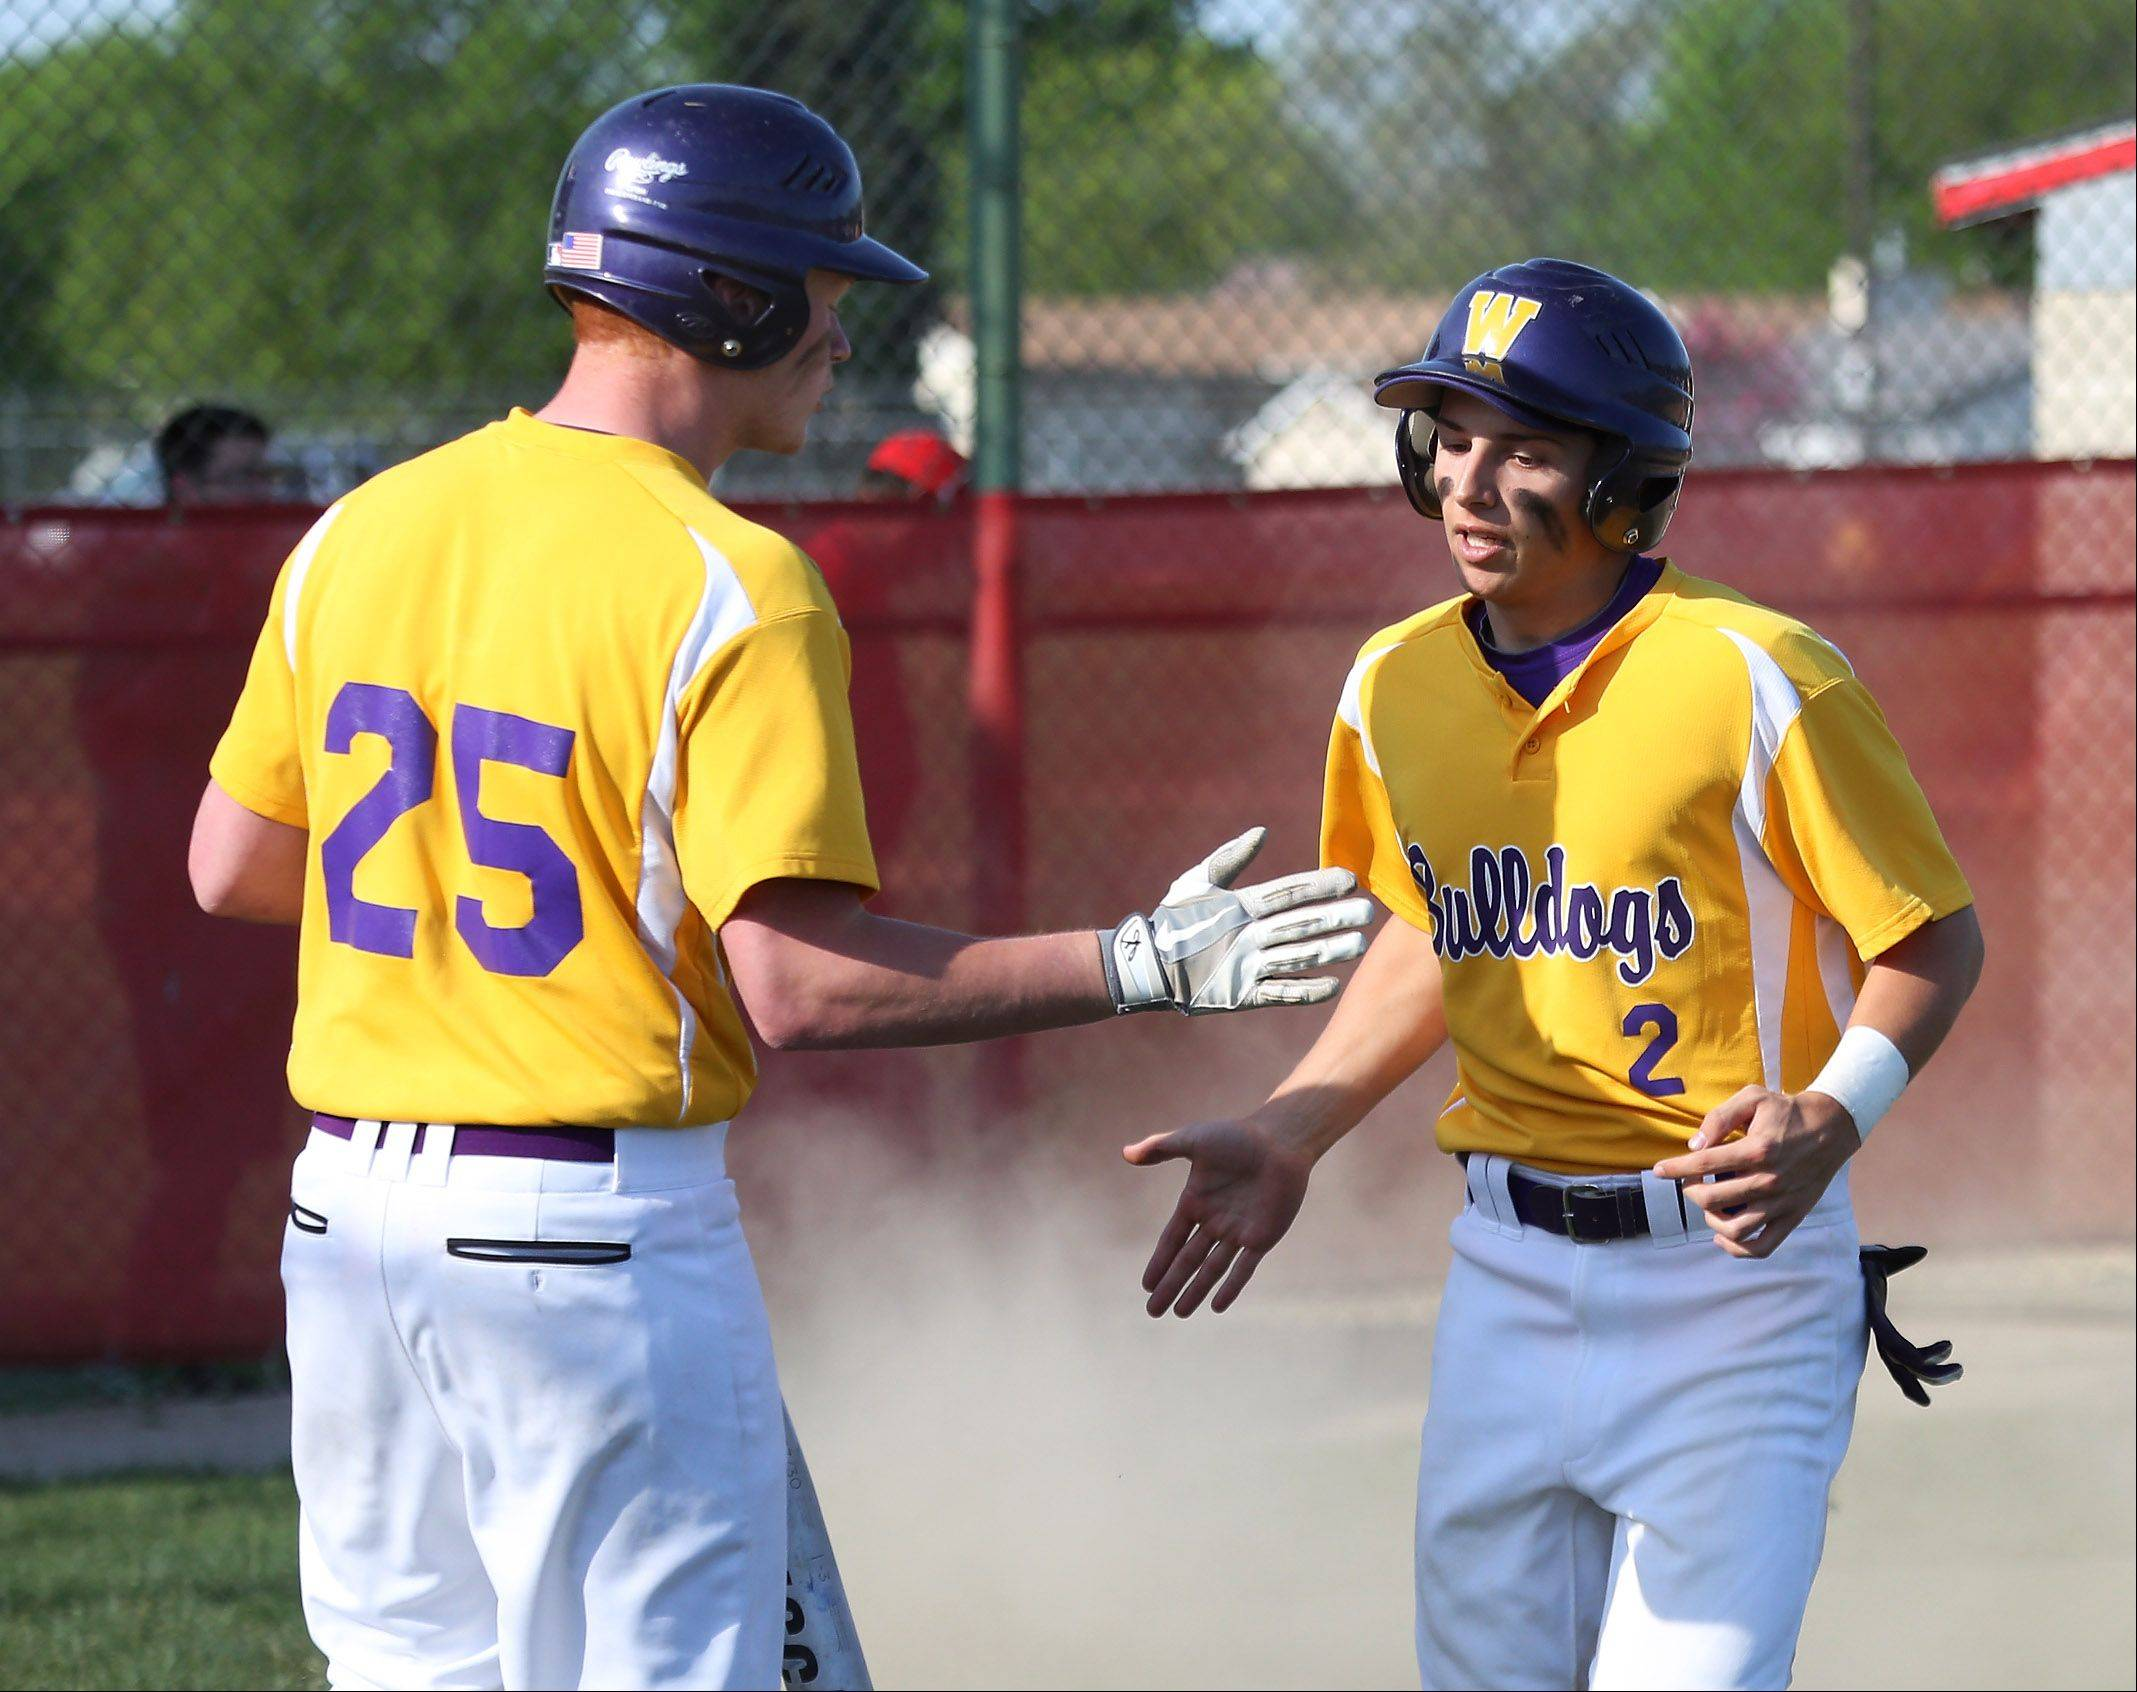 Wauconda batter Luke Kenny congratulates teammate Jeff Lindberg after he scored the first run in the fourth inning of the North Suburban Conference championship game against Mundelein on Thursday at Mundelein.